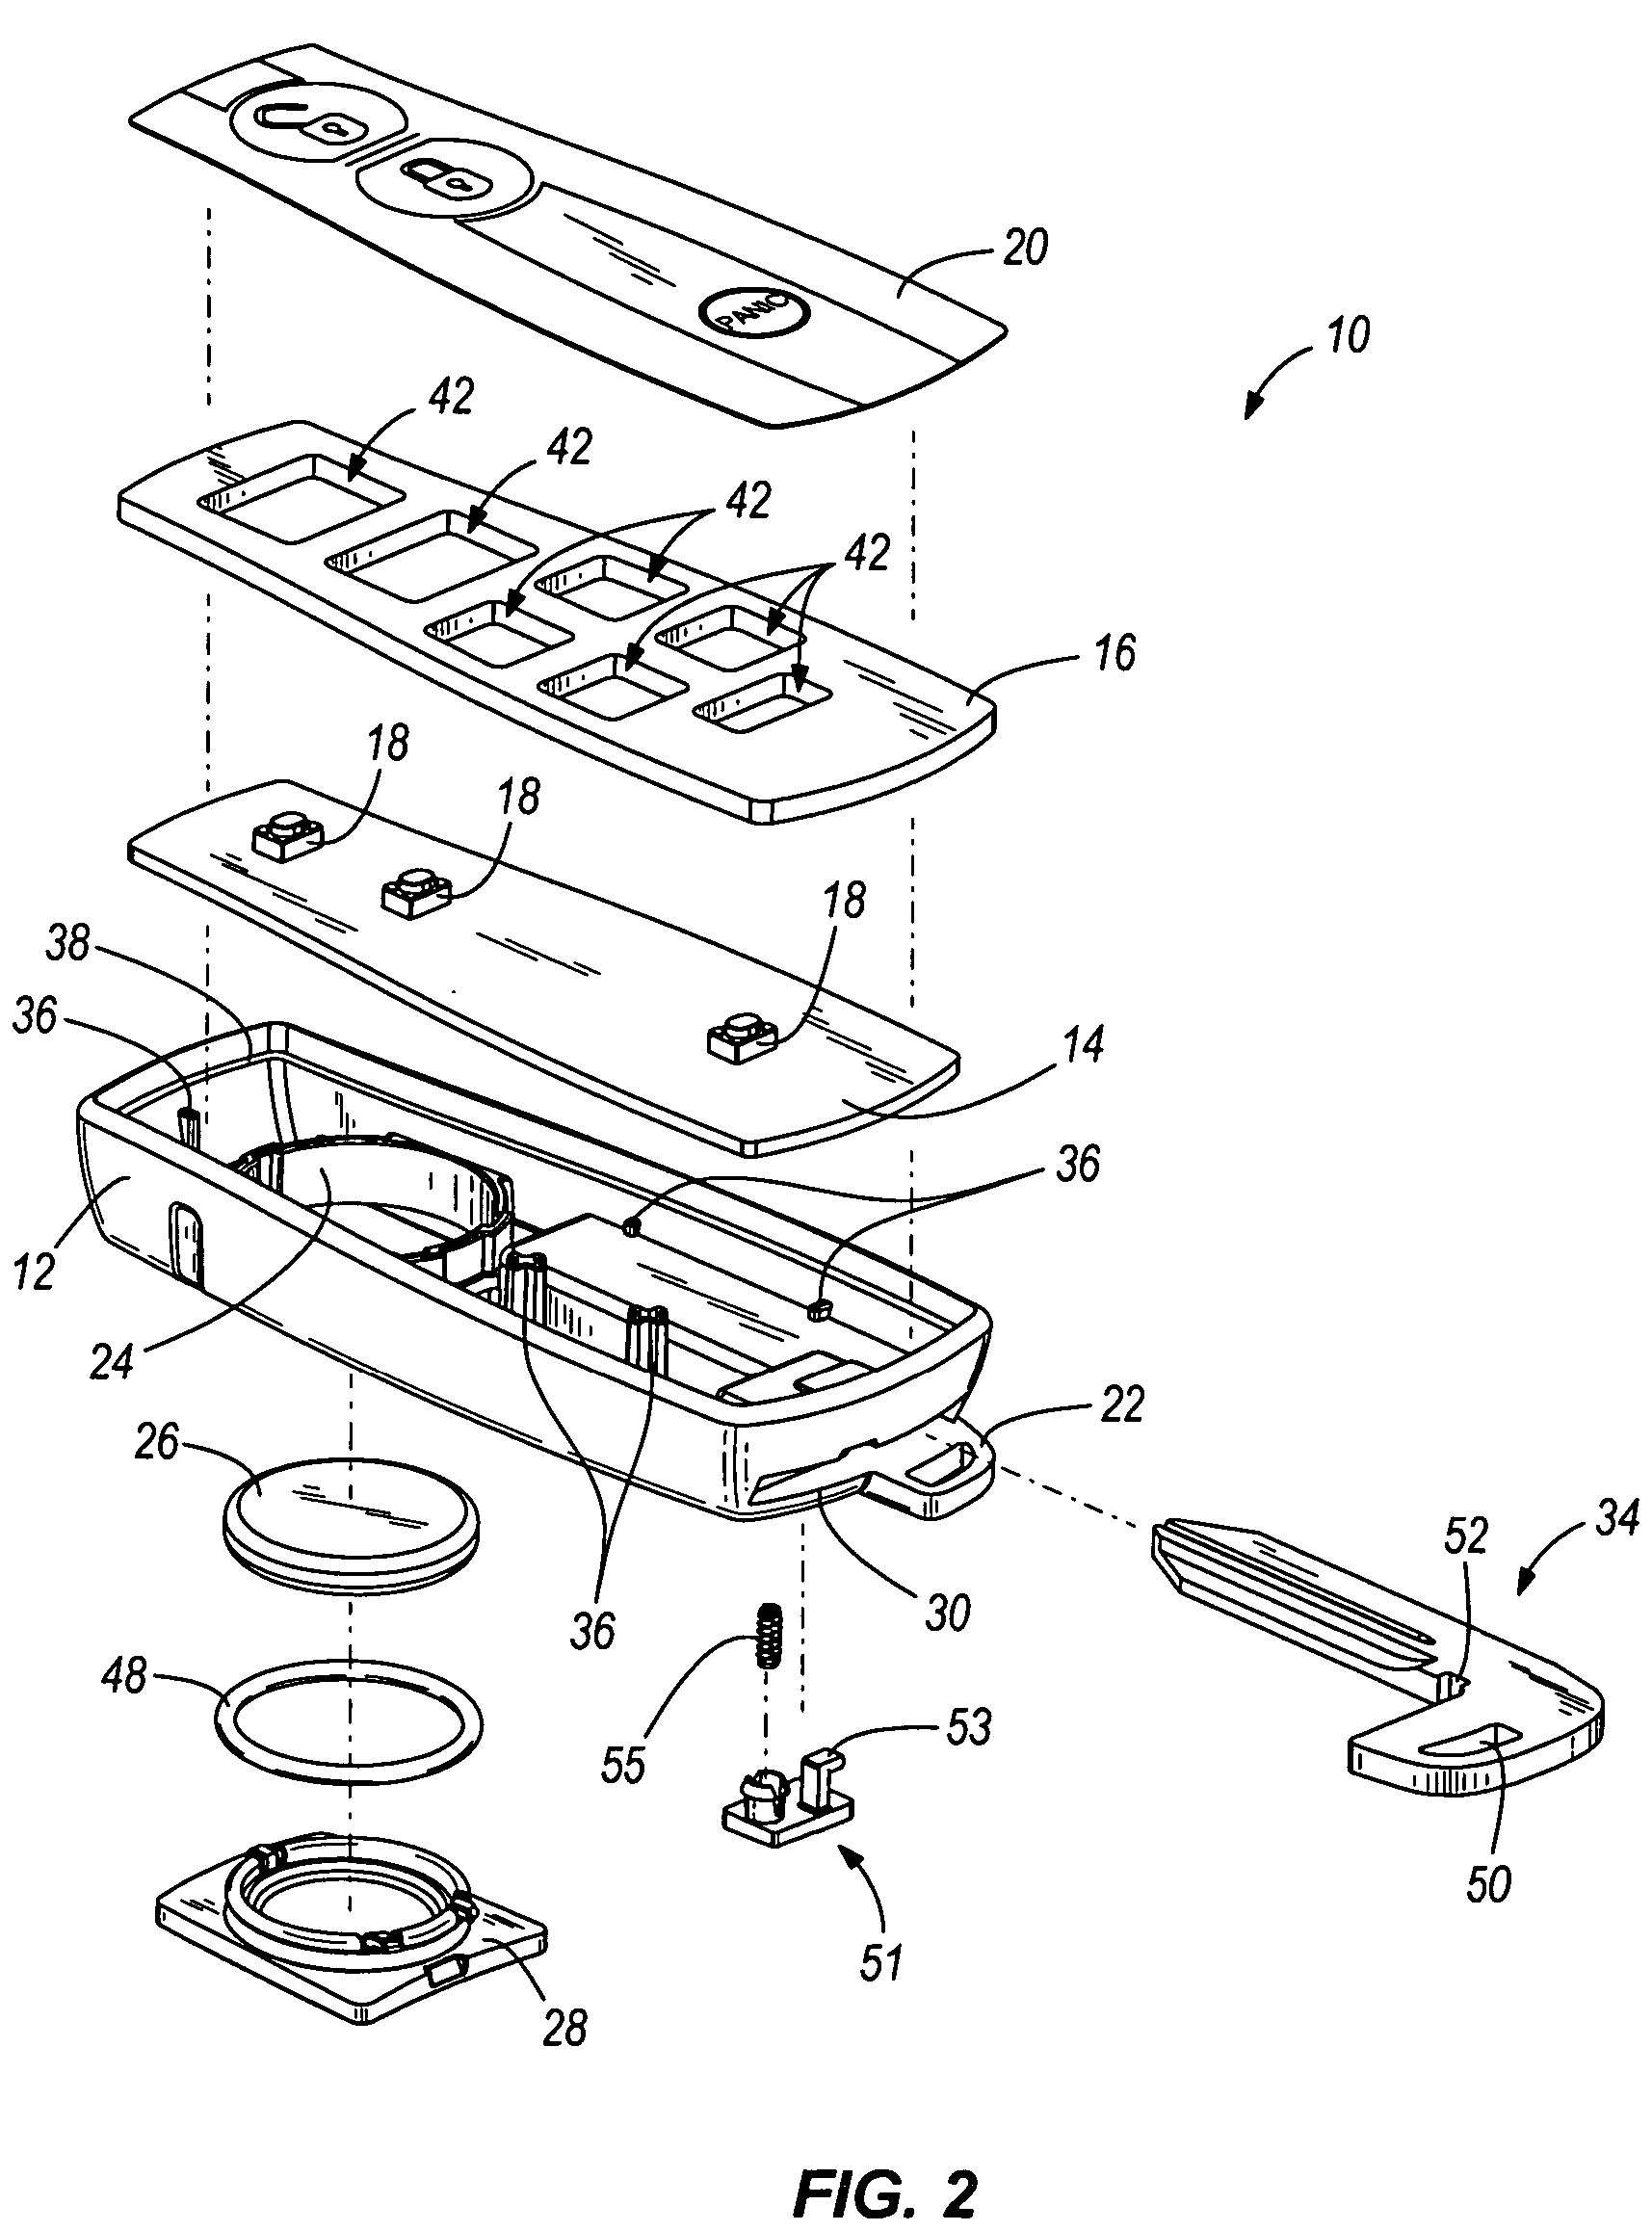 patent us7897888 - key fob device and method